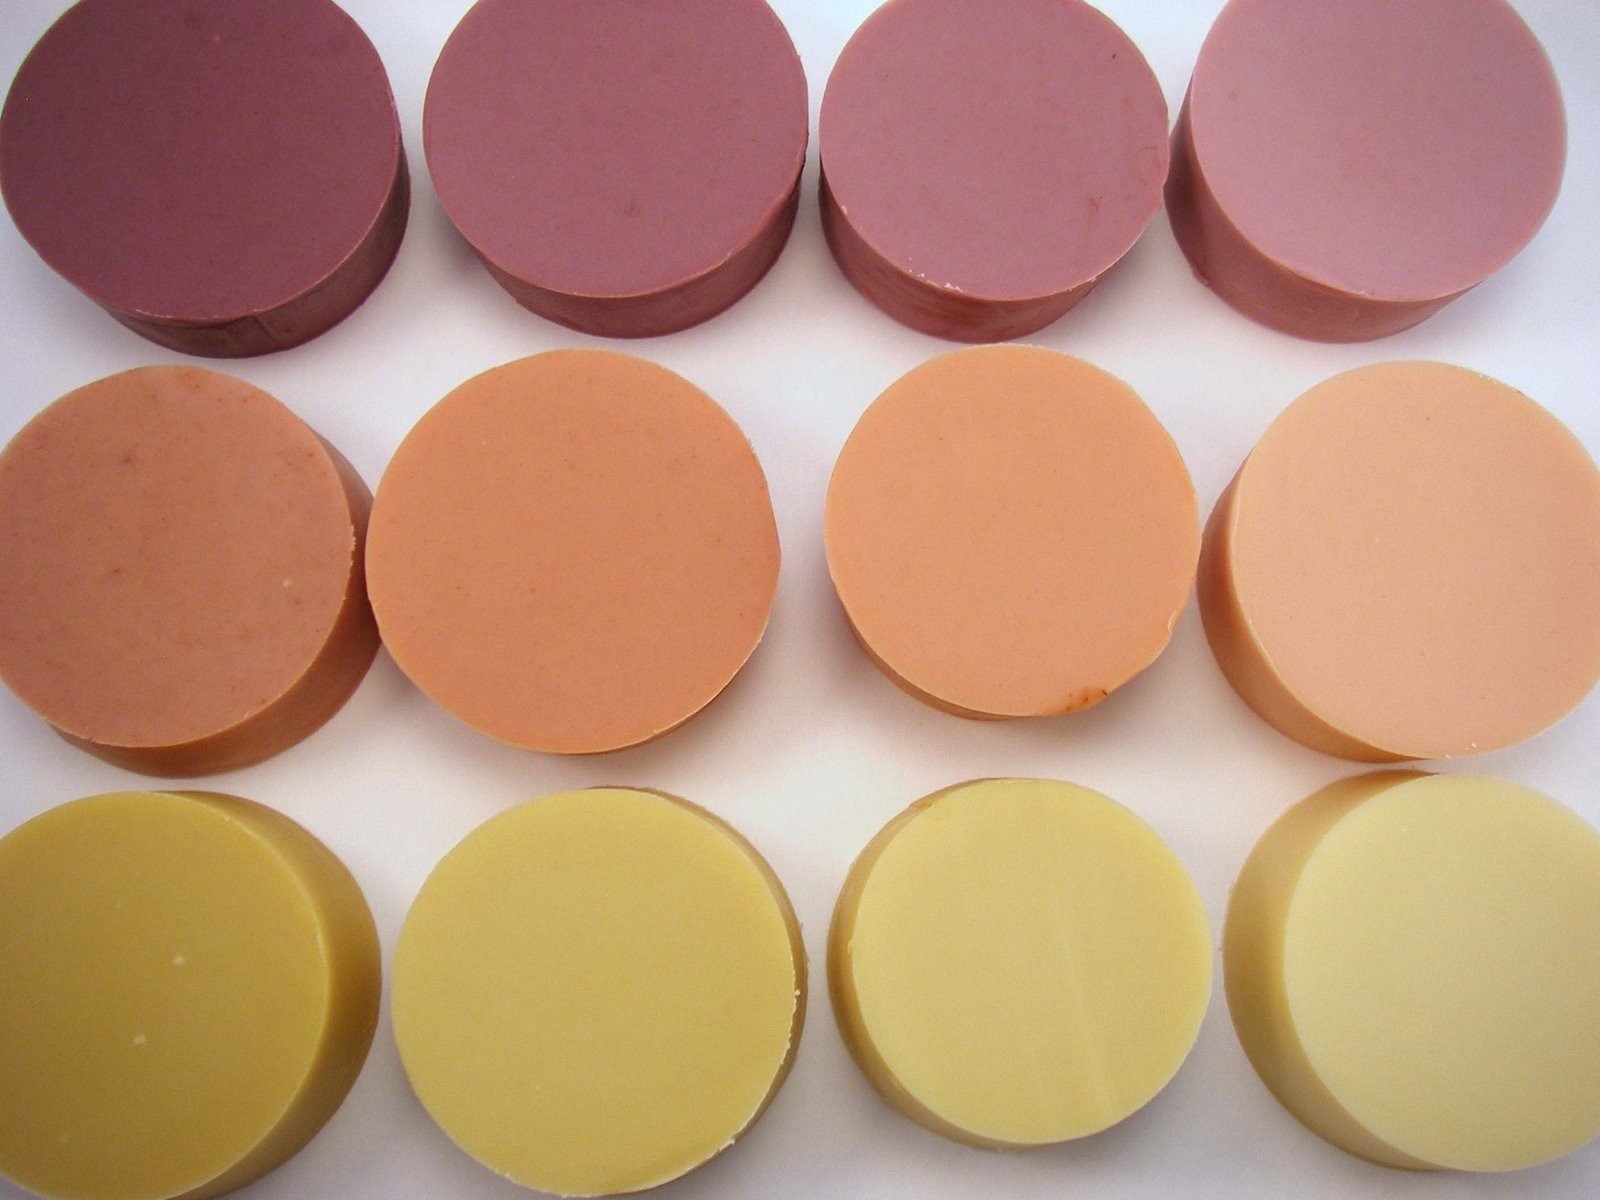 How to Test Soap Colorants - The Nova Studio